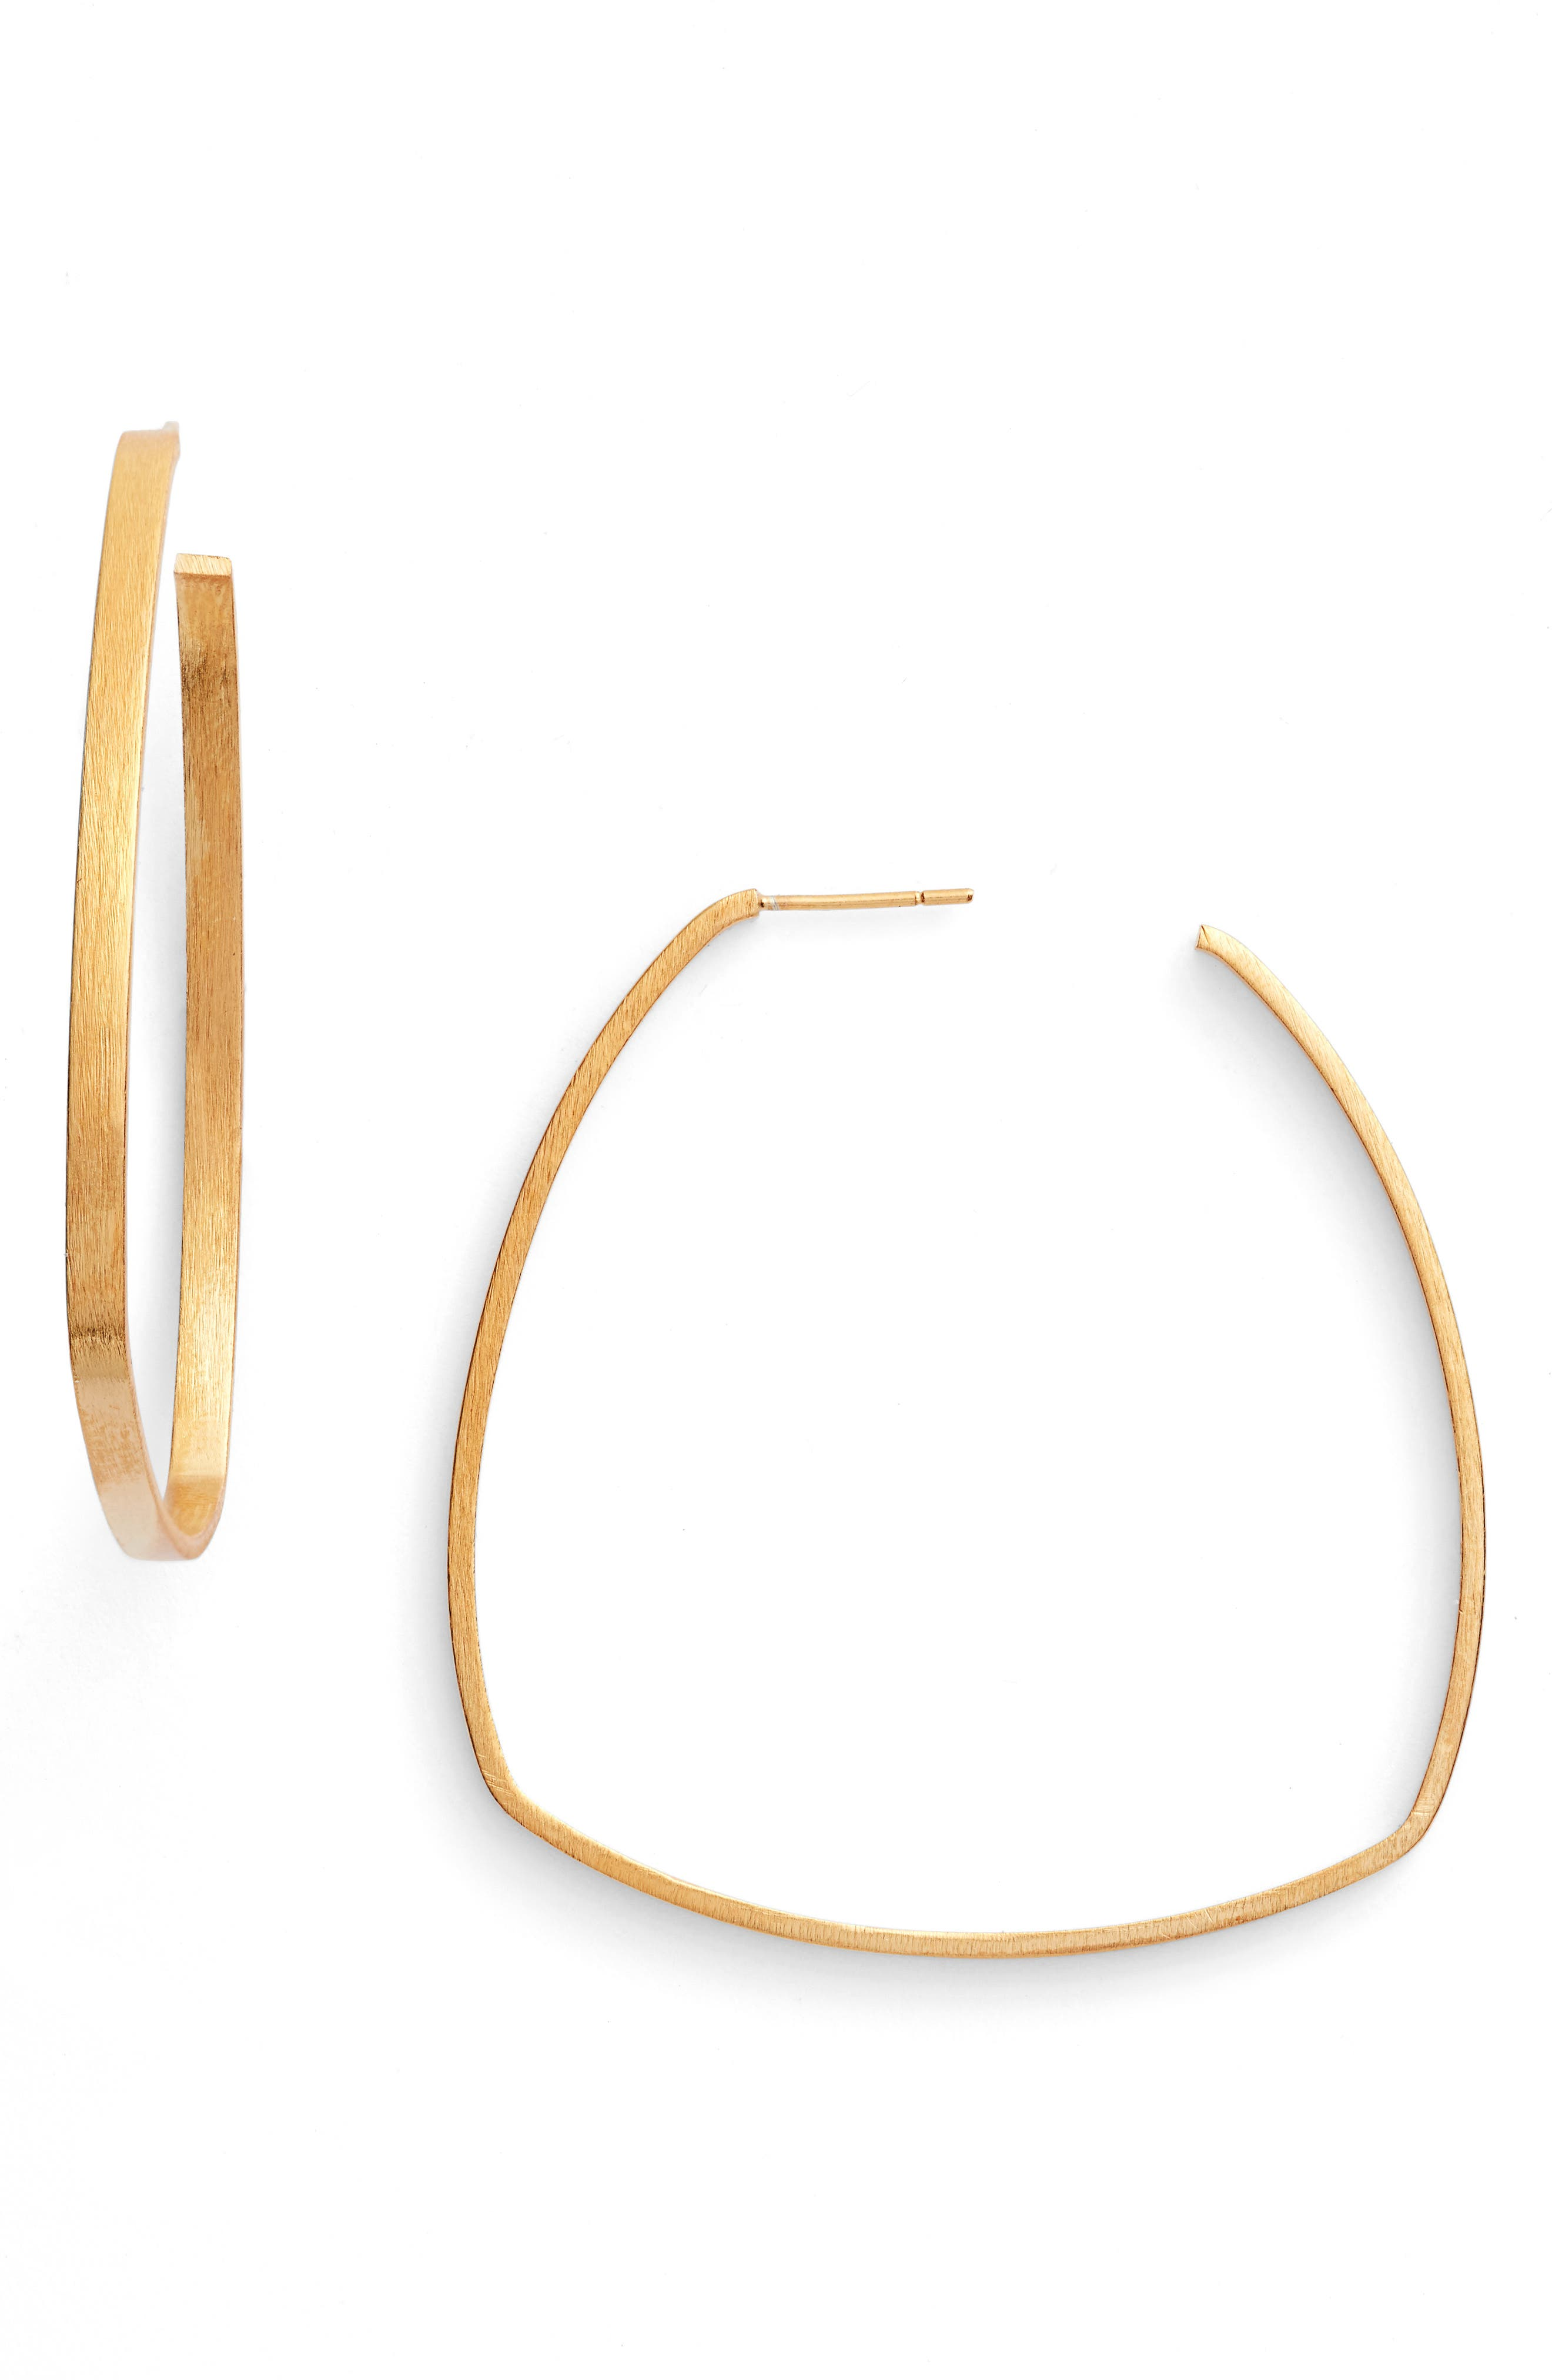 Square Hoop Earrings,                             Main thumbnail 1, color,                             GOLD